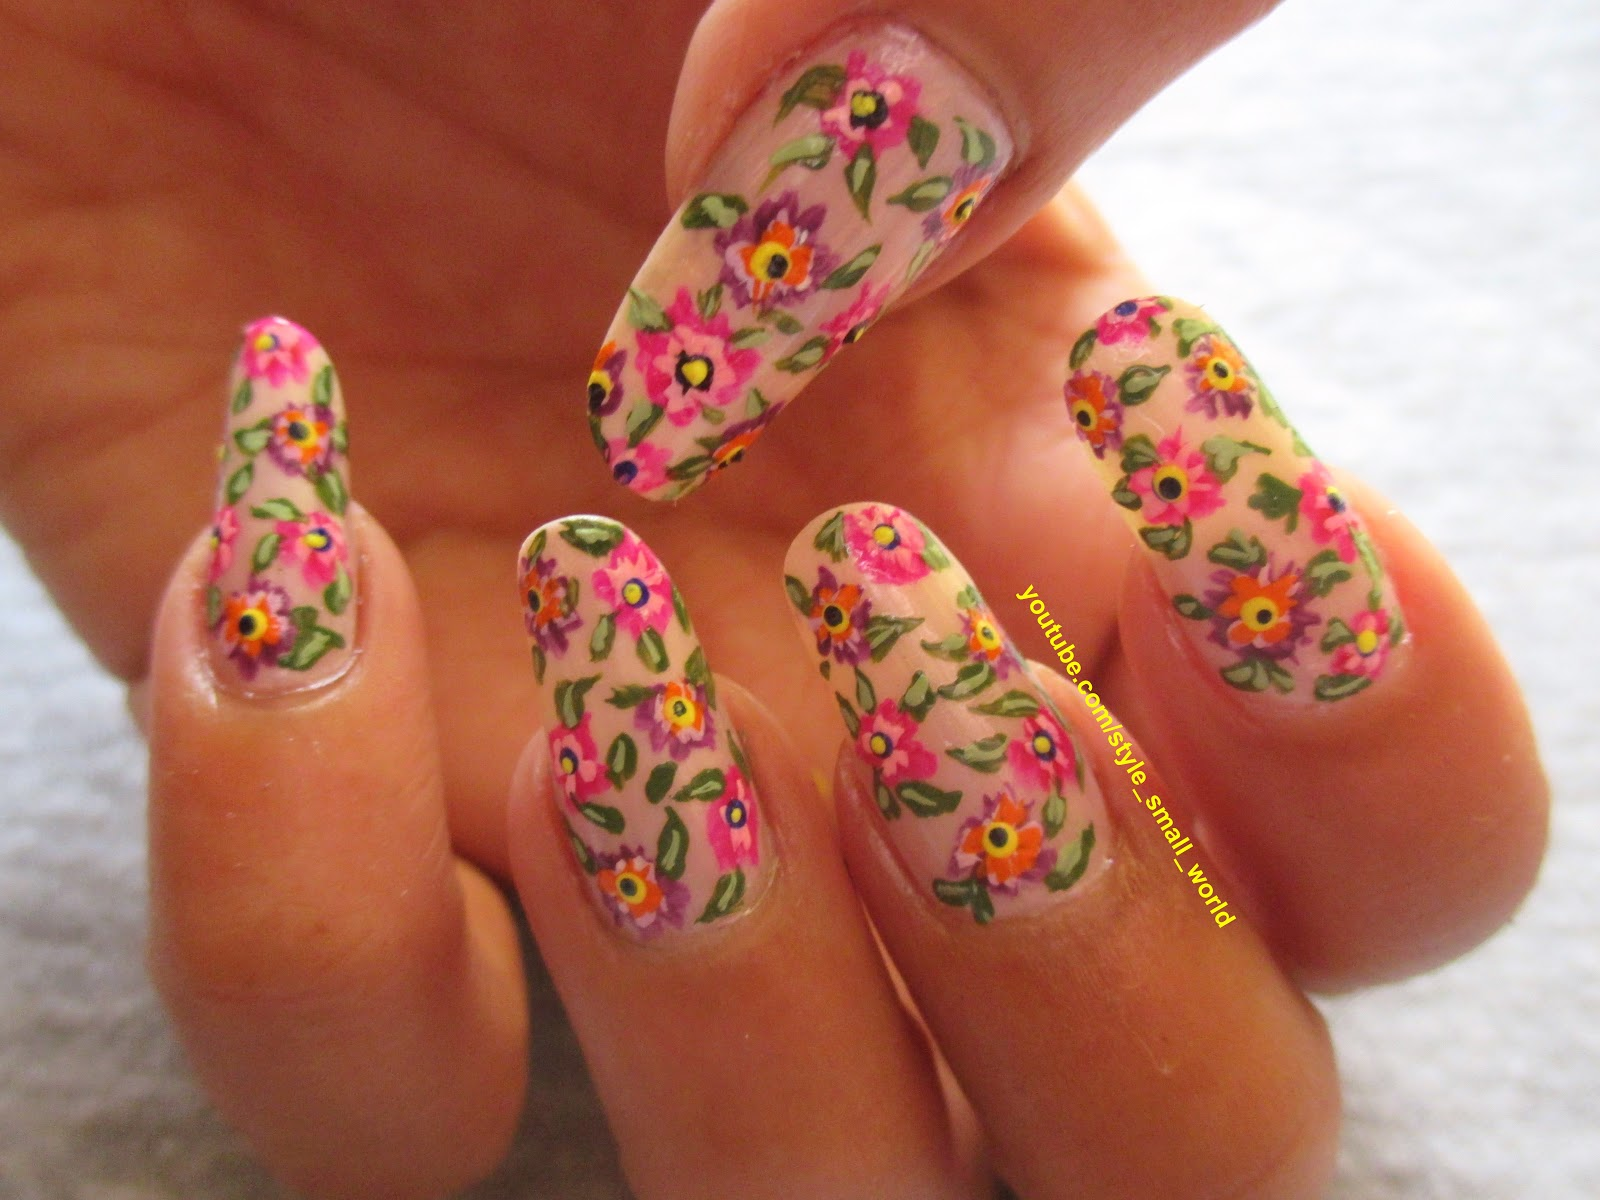 Style small world easy floral nail art design this video will guide you step by step how you can make this floral nail art design at home i hope you guys will enjoy this prinsesfo Images